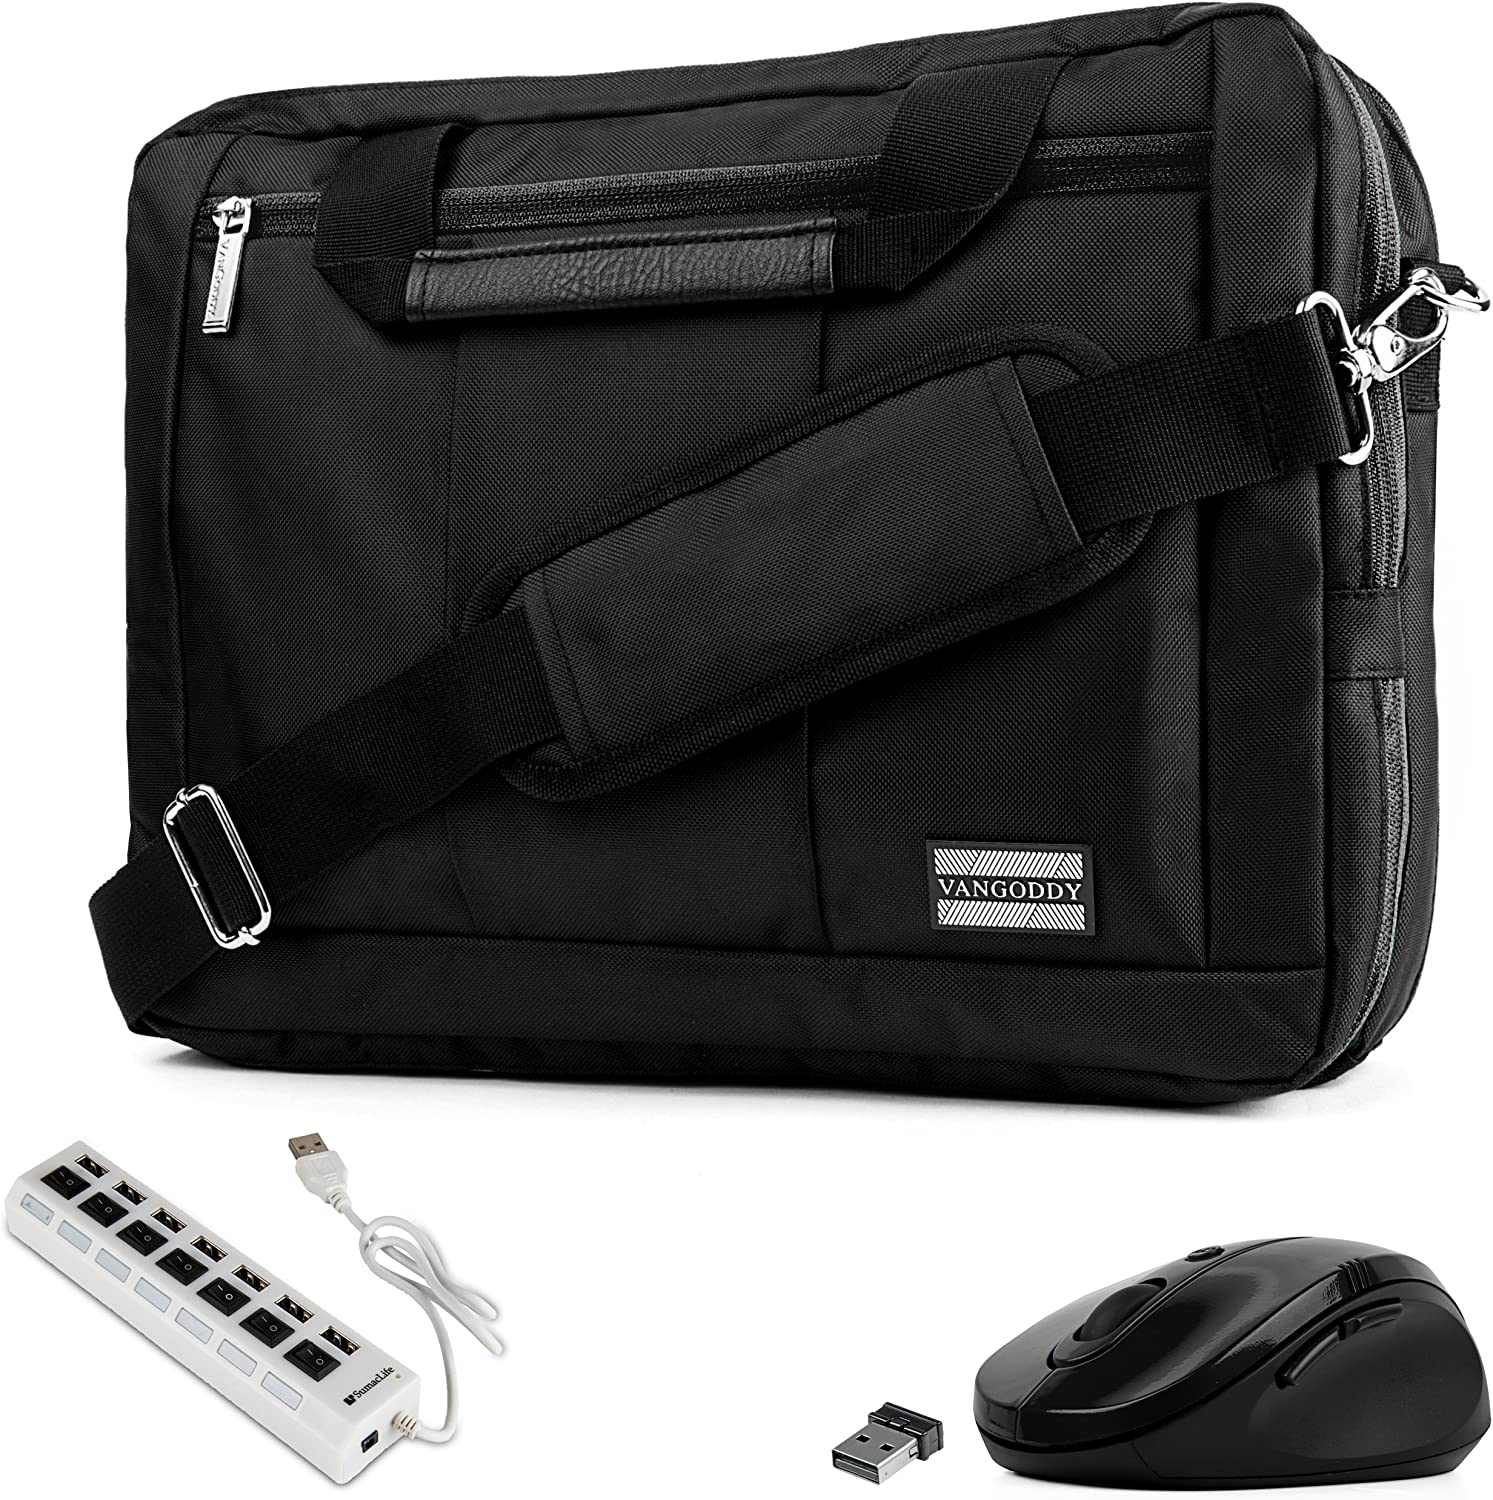 """Black Trim Convertible Laptop Bag, USB Hub, Mouse for Dell Inspiron, Latitude, XPS, ChromeBook 11"""" to 13.3 inch"""